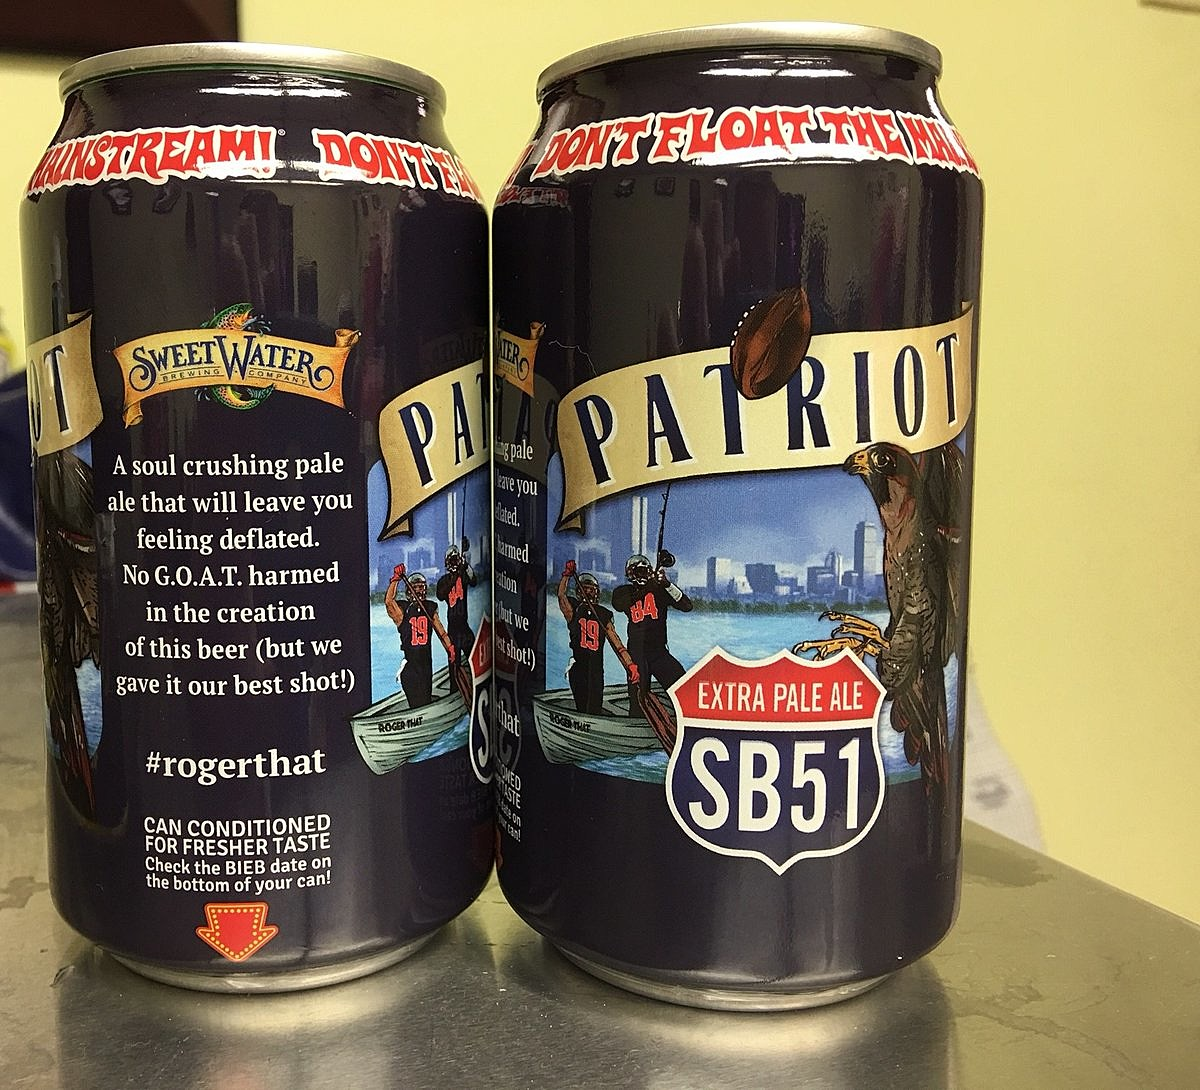 SweetWater Brewing's Patriot Extra Pale Ale. Photo: SweetWater Brewing Facebook